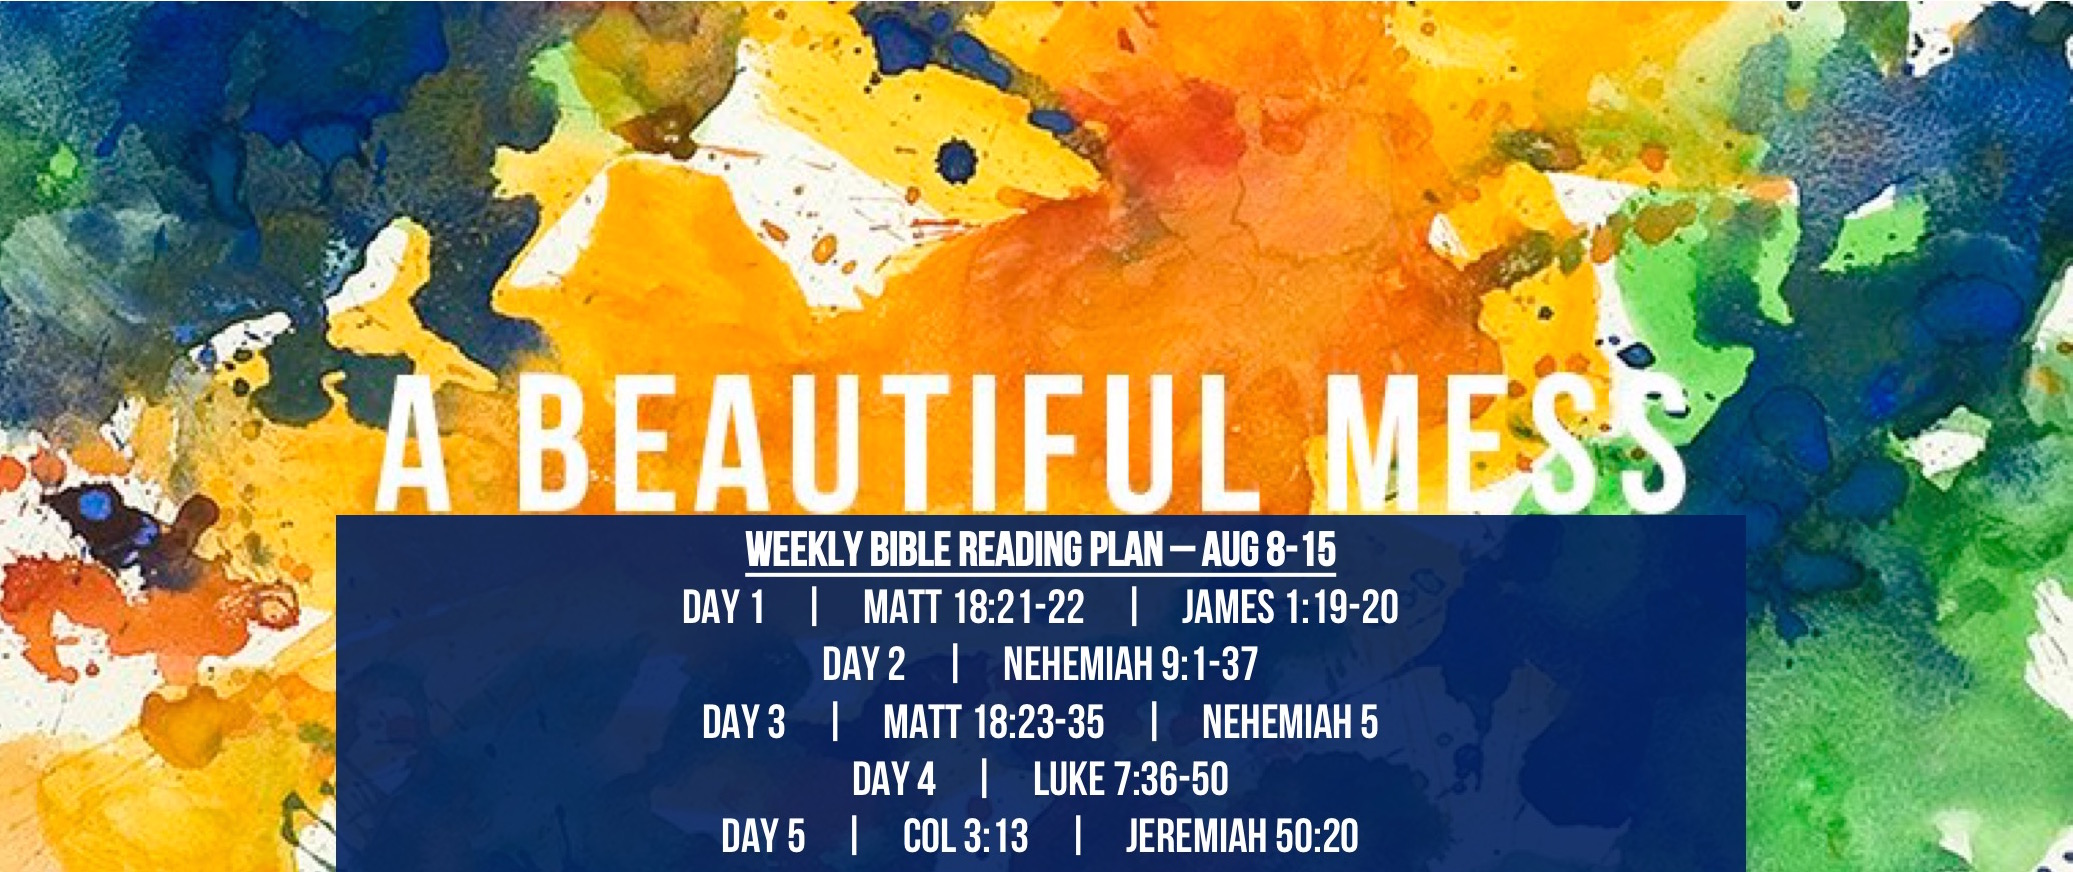 Matt 18.21-35 - Reading Plan -  Aug 6-13.2016 - A Beautiful Mess - The Forgiving Church